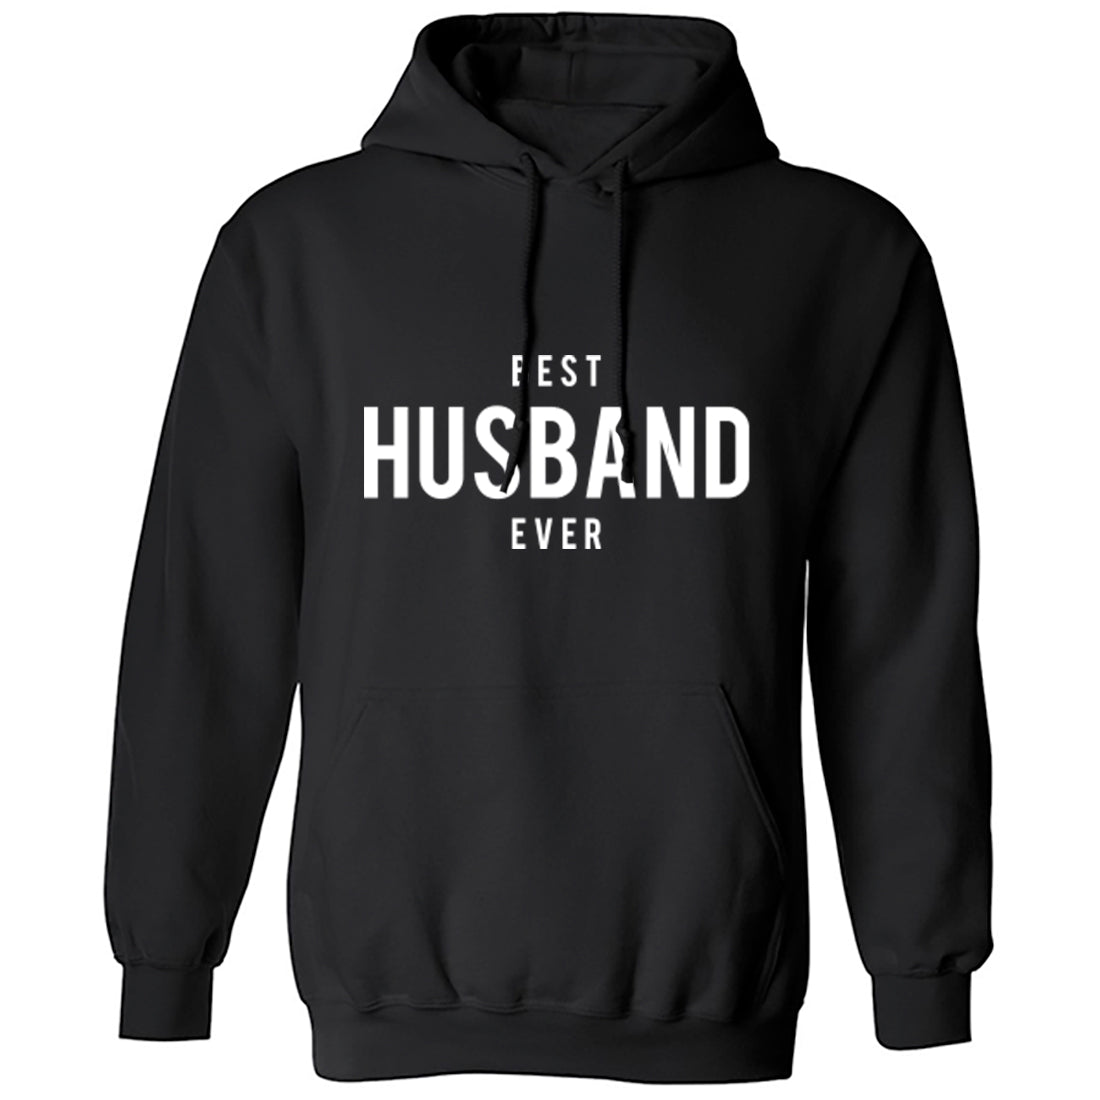 Best Husband Ever Unisex Hoodie K1458 - Illustrated Identity Ltd.